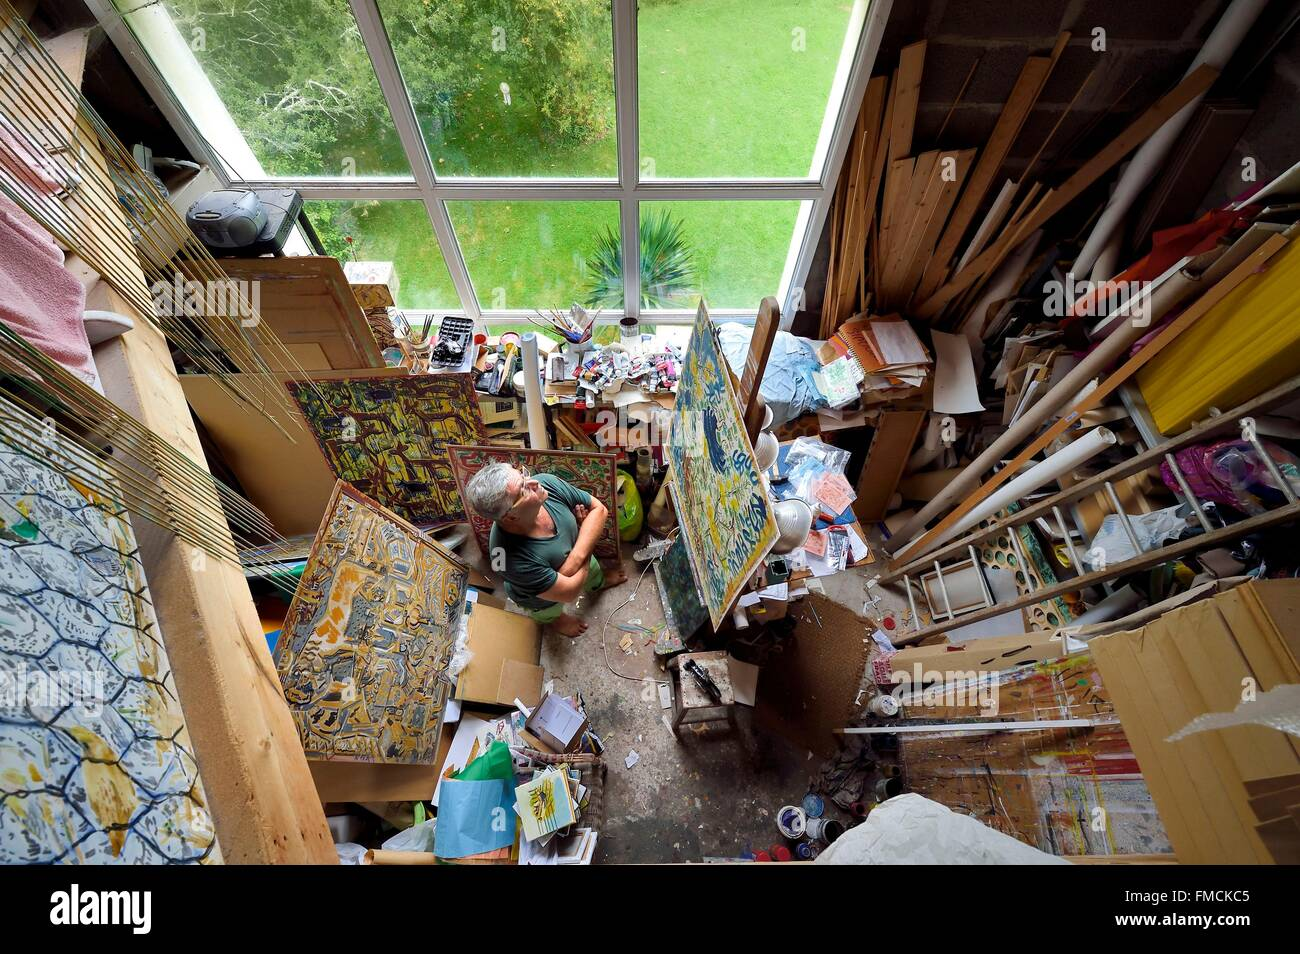 France, Finistere, Lannilis, Prat Ar Coum, the artist Loic Madec in his workshop - Stock Image